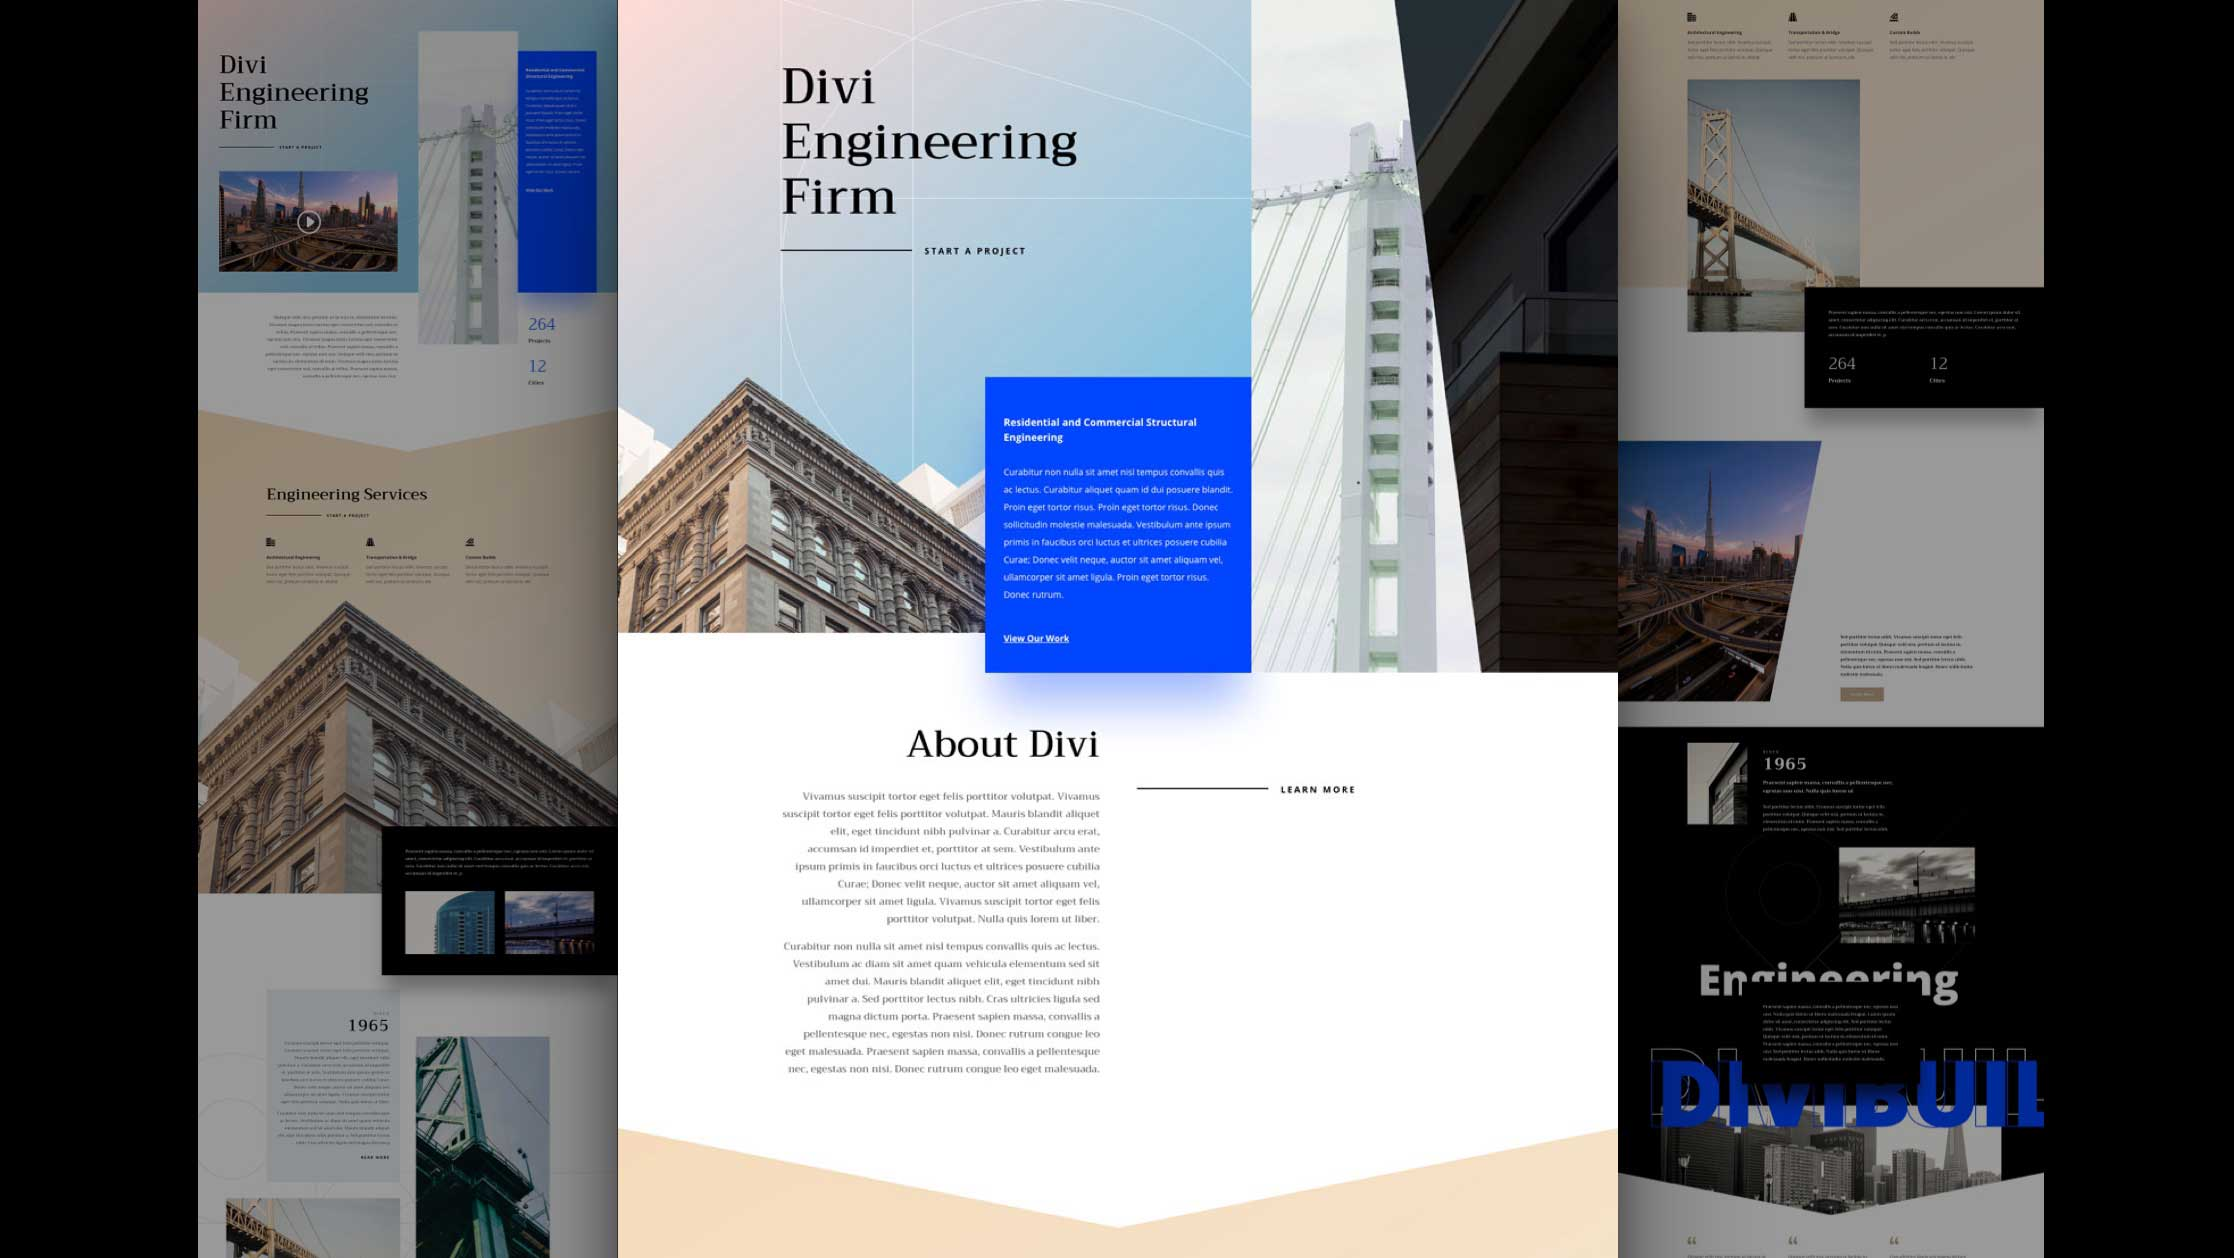 Get a FREE Engineering Firm Layout Pack for Divi